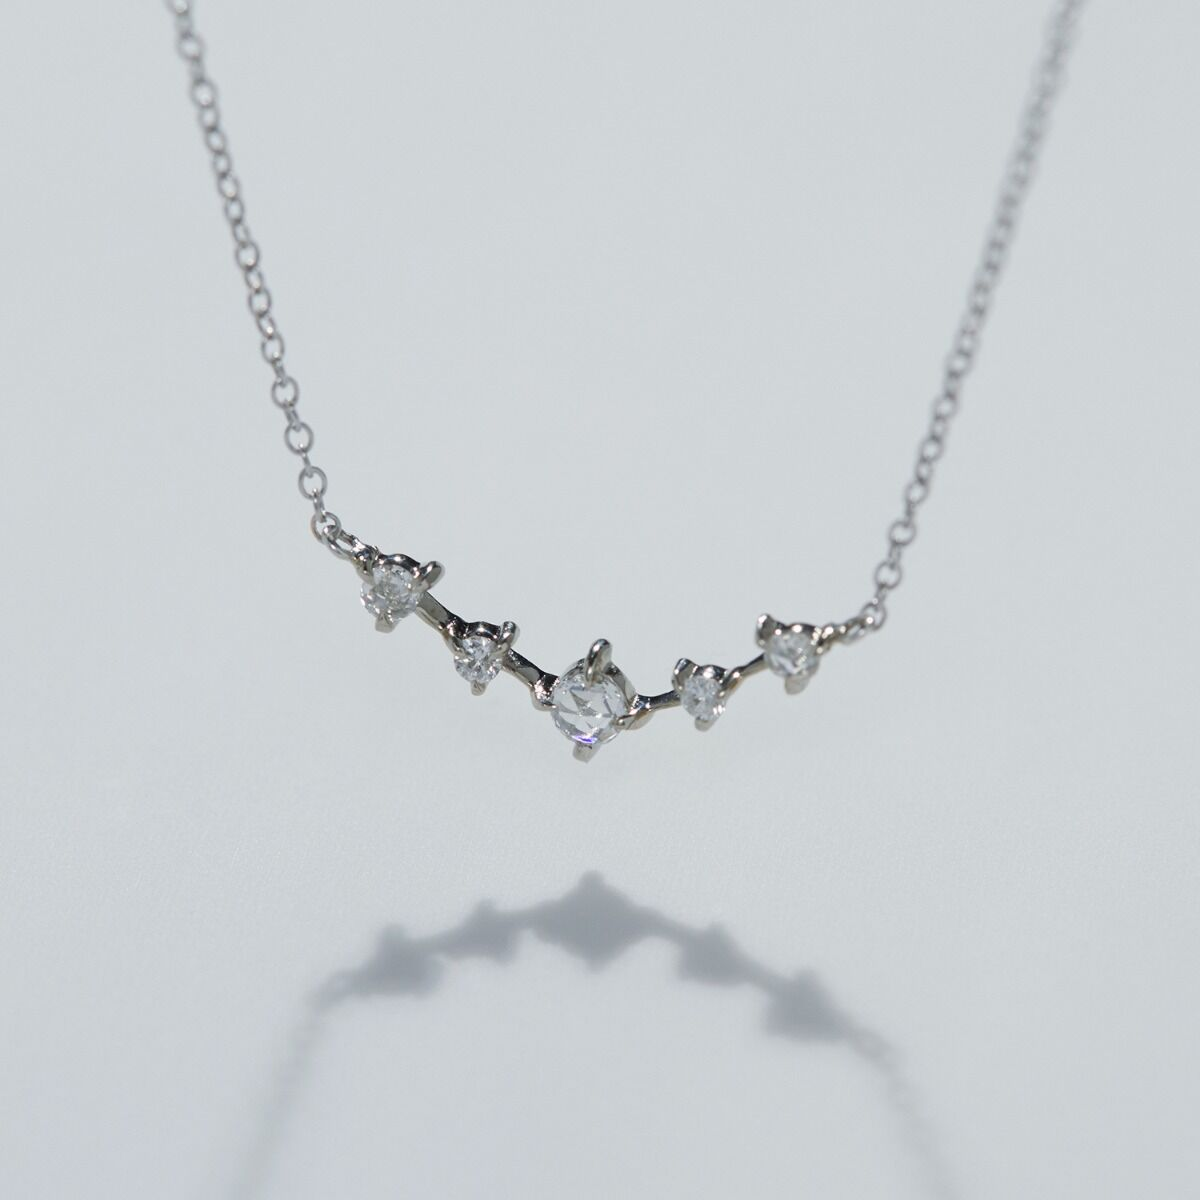 Snow Queen Necklace, white gold image